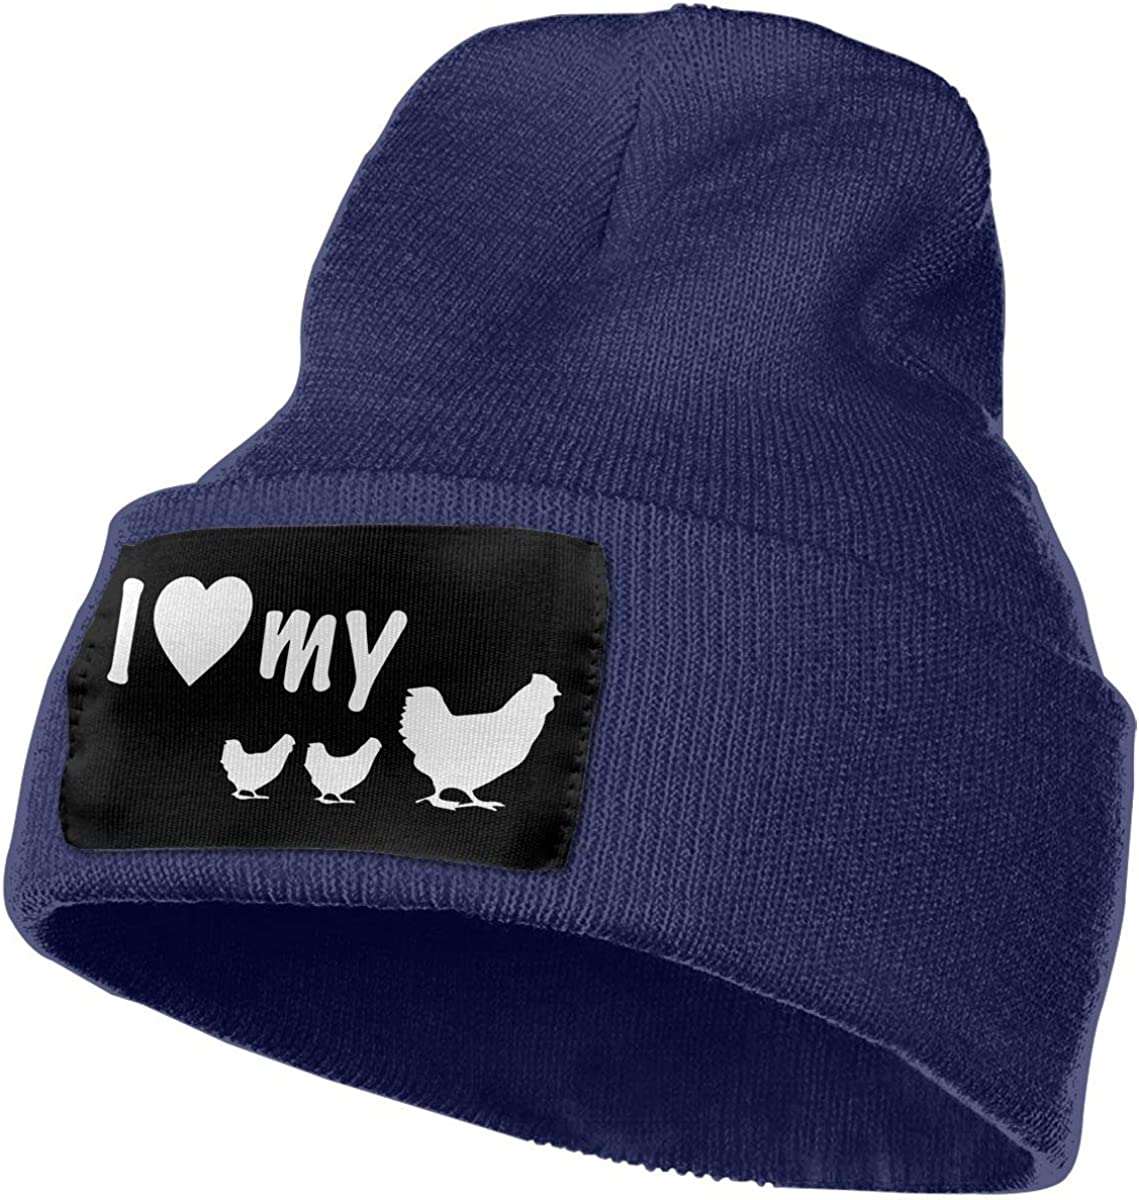 I Love May Chicken Men /& Women Knit Hats Stretchy /& Soft Skull Cap Beanie